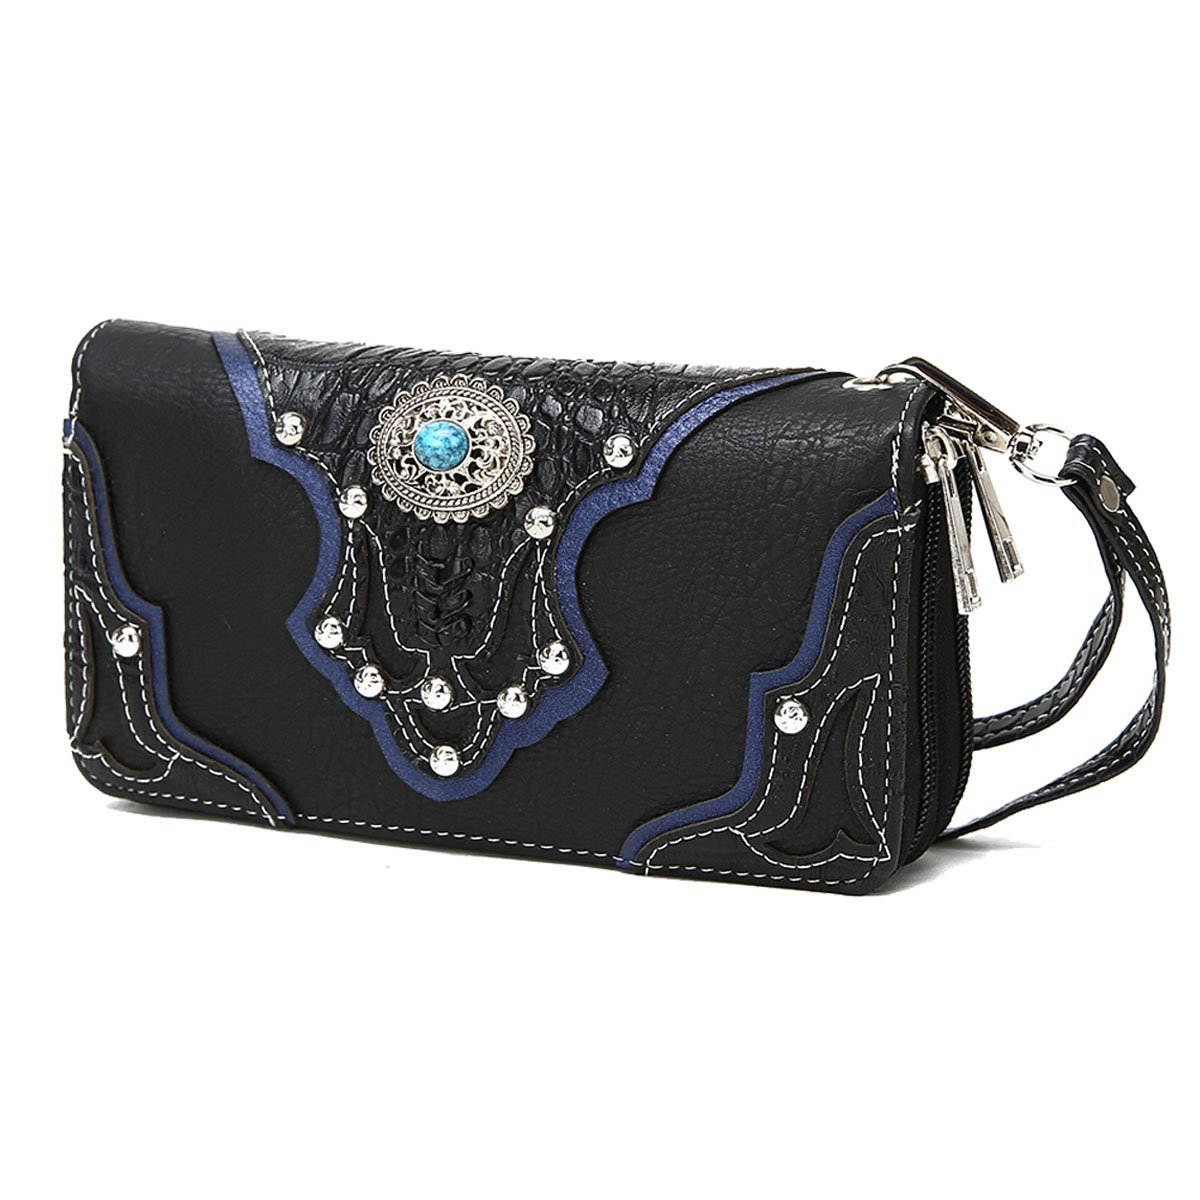 Conchos Studded Crocodile Laser Cut Cowgirl Western Style Country Purse Wrist Strap Women Wristlet Wallet (Black) by Cowgirl Trendy (Image #2)